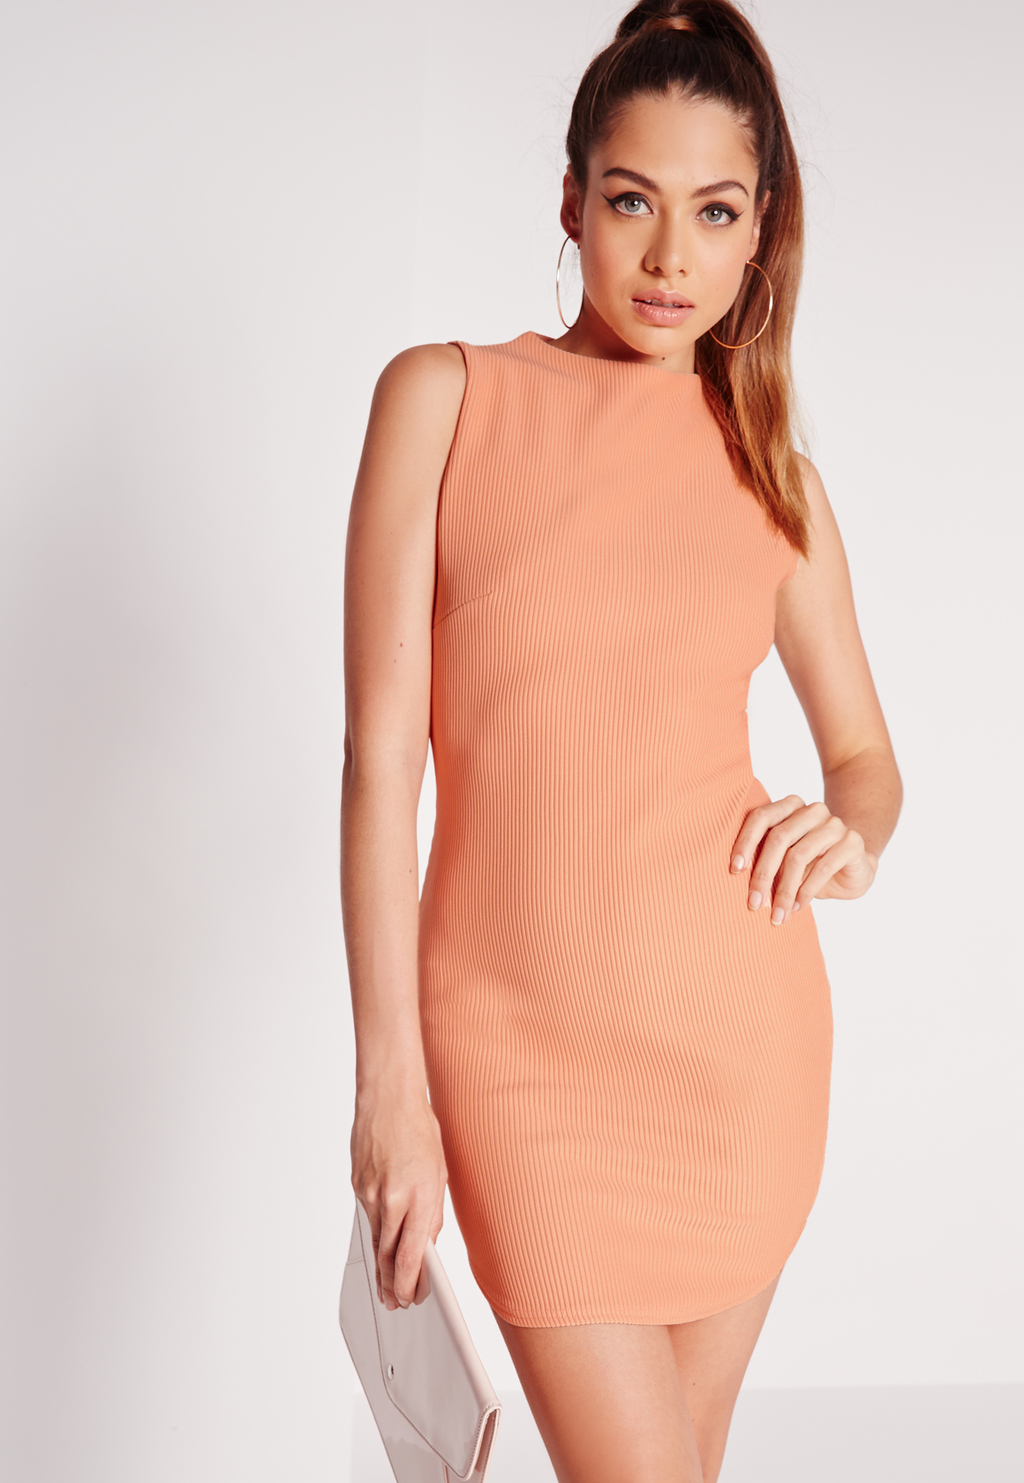 Sleeveless Ribbed Neck Bodycon Dress Salmon, Salmon - length: mid thigh; fit: tight; pattern: plain; sleeve style: sleeveless; neckline: high neck; style: bodycon; predominant colour: coral; occasions: evening; fibres: viscose/rayon - stretch; sleeve length: sleeveless; texture group: jersey - clingy; pattern type: fabric; season: s/s 2016; wardrobe: event